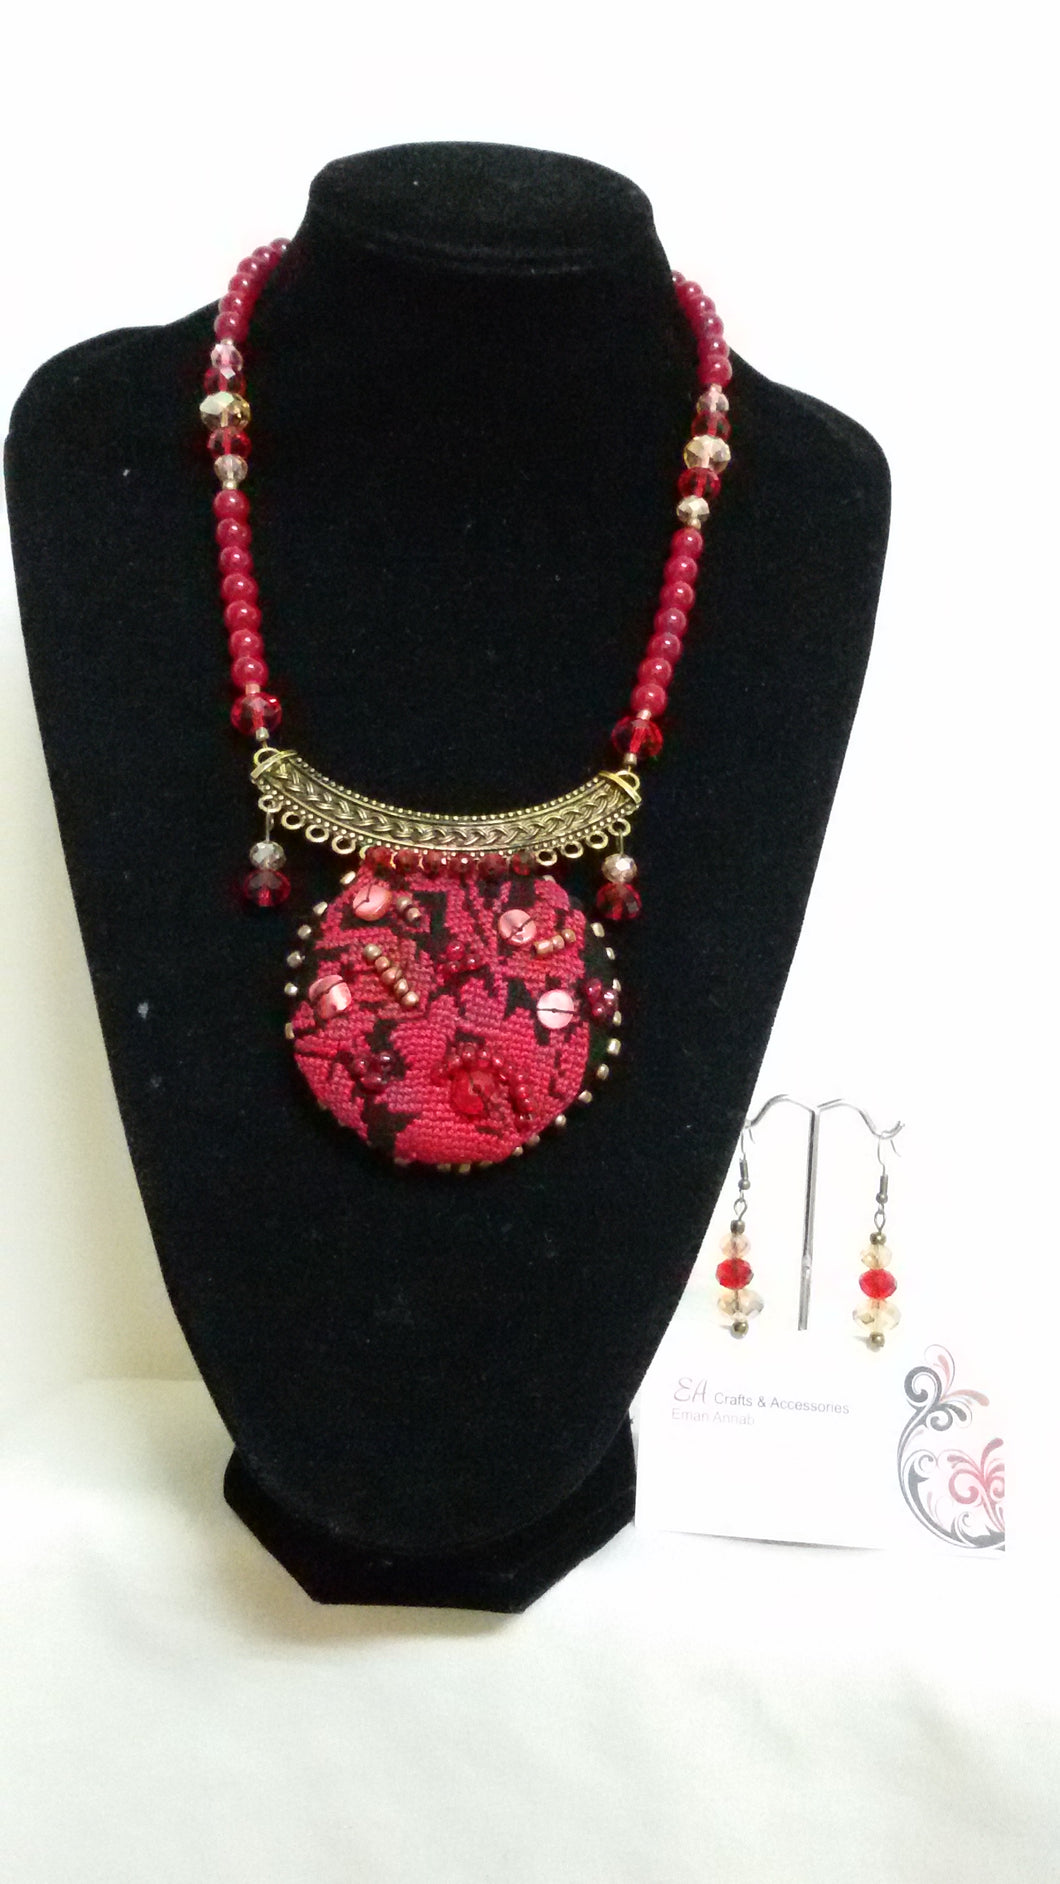 Handmade red necklace and earrings with embroidery - Falastini Brand